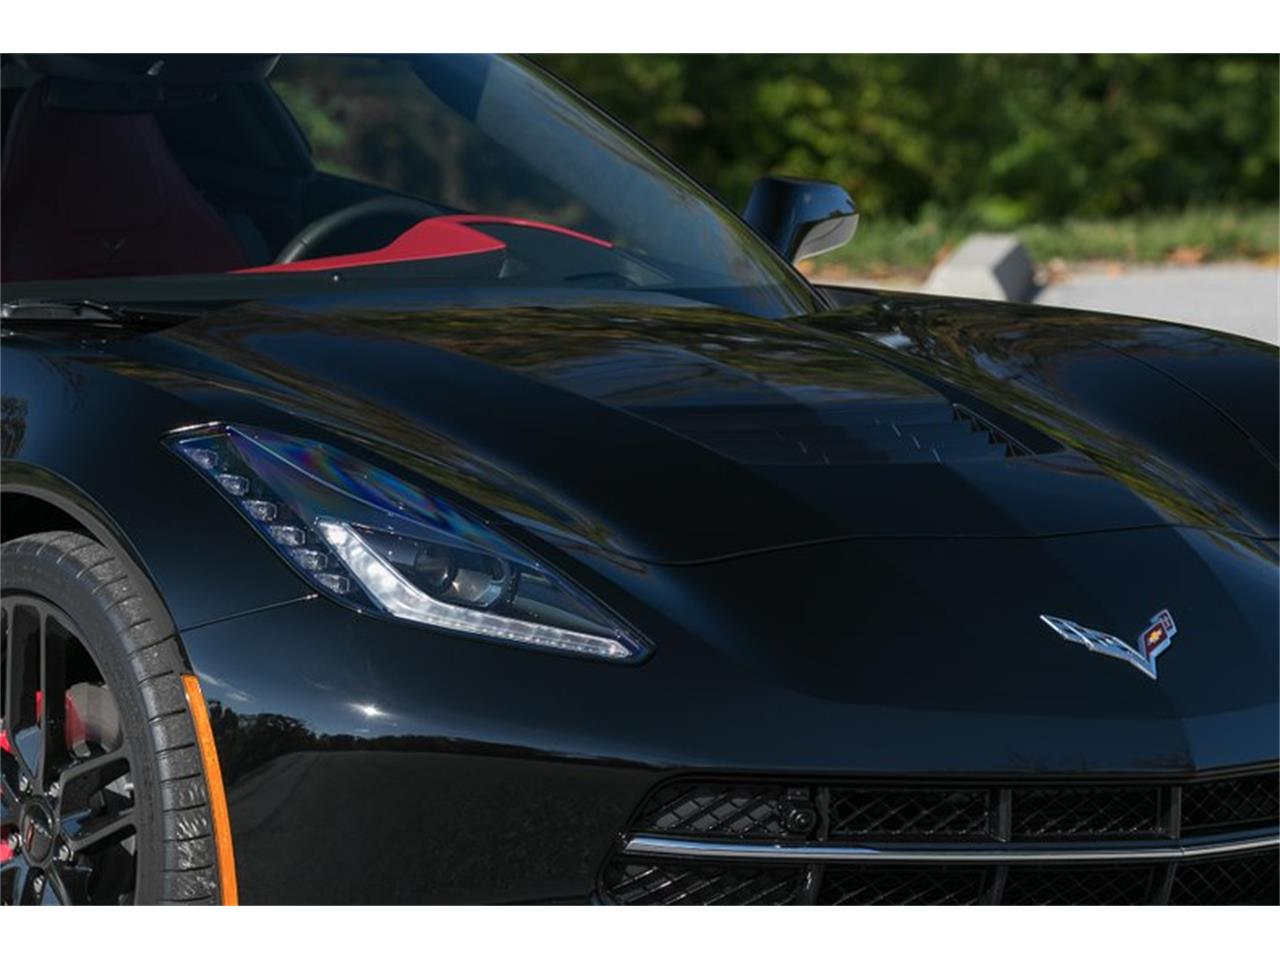 2016 Chevrolet Corvette for sale in St. Charles, MO – photo 12